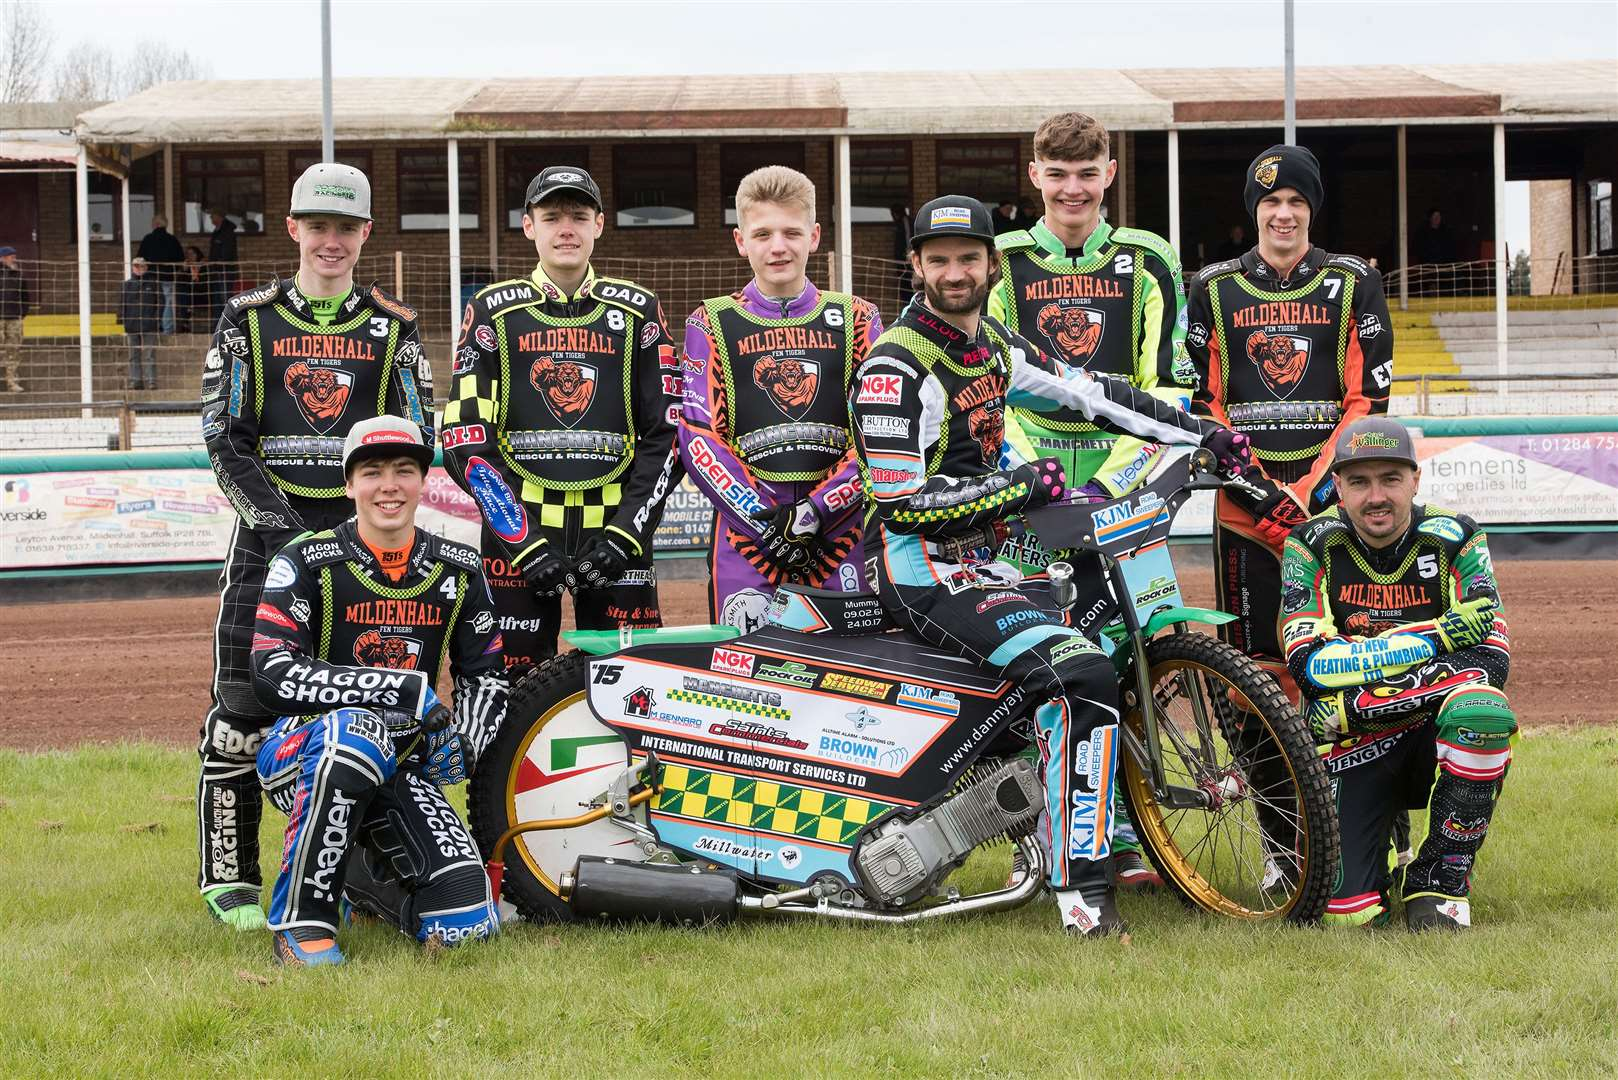 Mildenhall Fen Tigers Press and Practice Day Fen Tigers team 2019 Danny Ayres, Sam Bebee, Charlie Brooks, Jason Edwards, Dave Wallinger, Elliot Kelly, Macauley Leek and Sam Norris Picture by Mark Westley. (9780899)